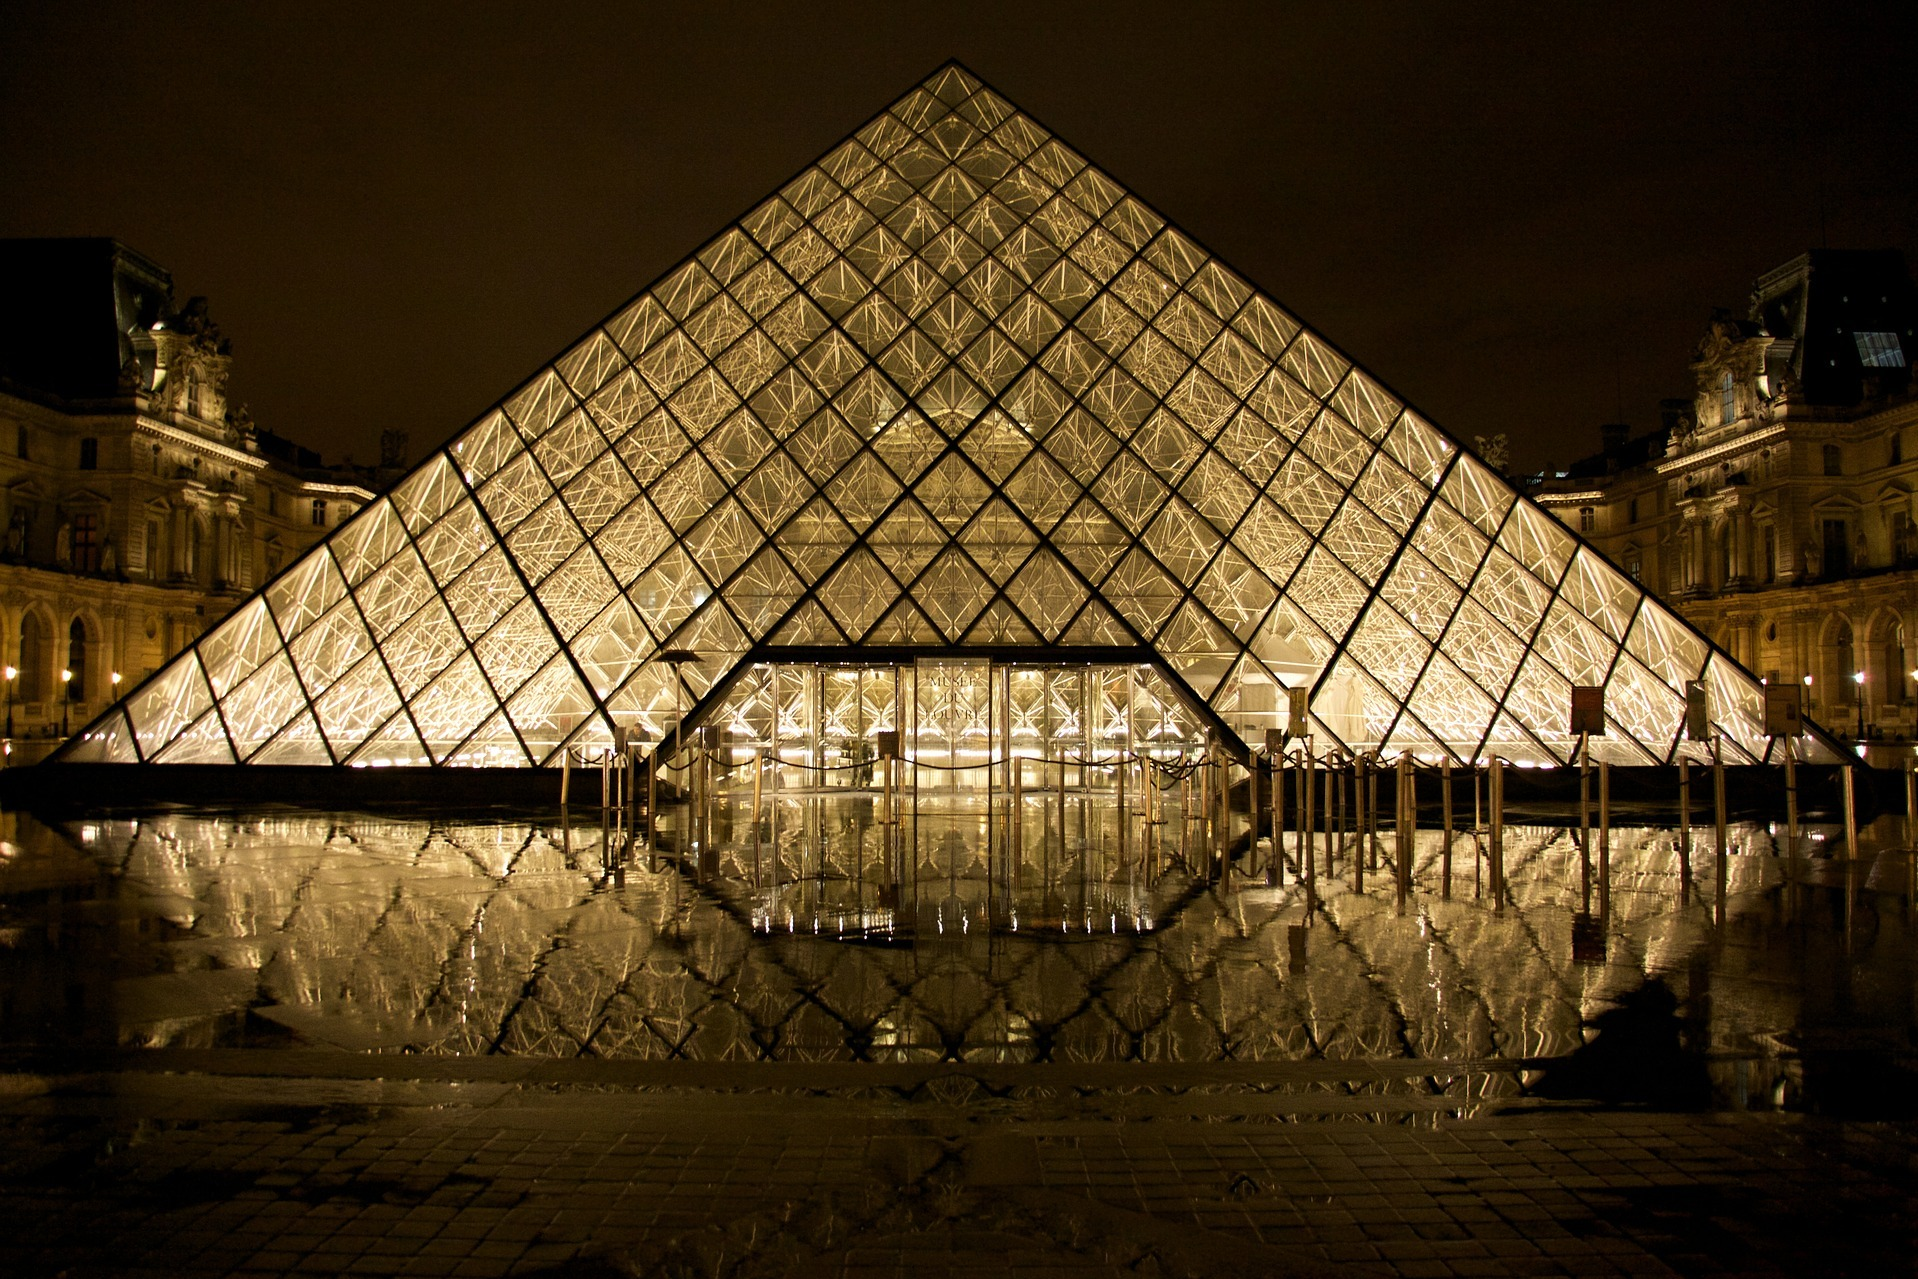 The Louvre in Paris, France at night